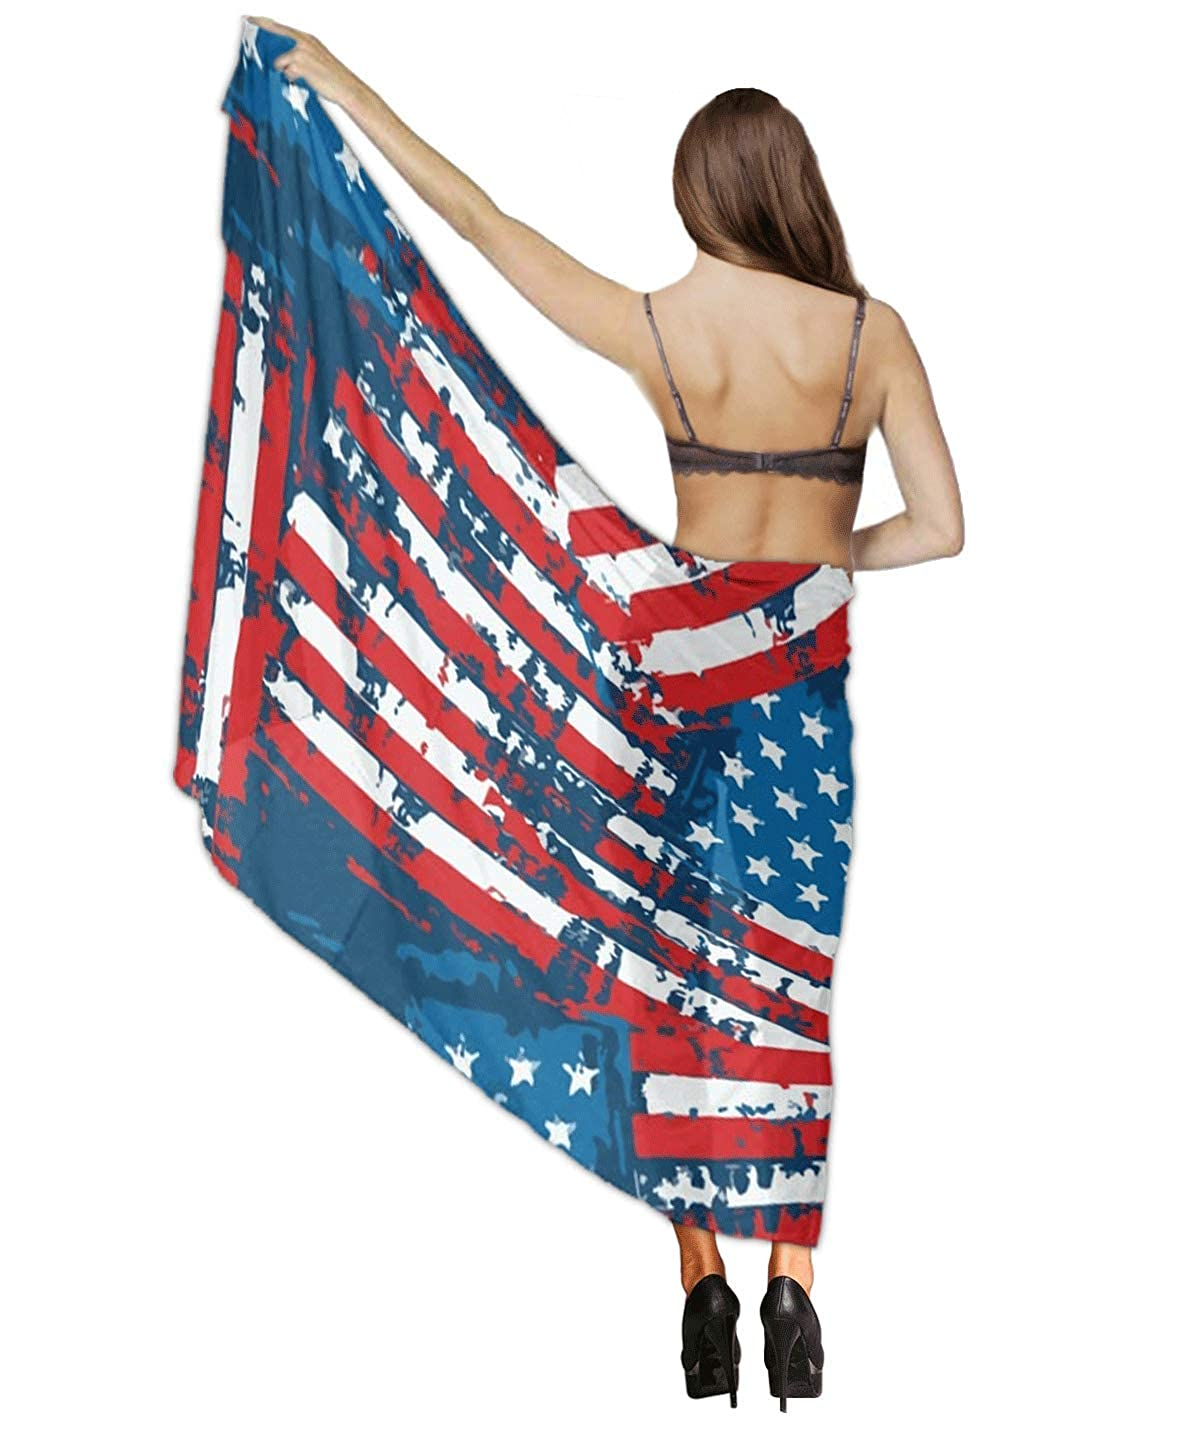 79f1510ad91 USA American Flag Patriotic Chiffon Scarf Beach Cover up Sarong Wrap gift  for women at Amazon Women's Clothing store: